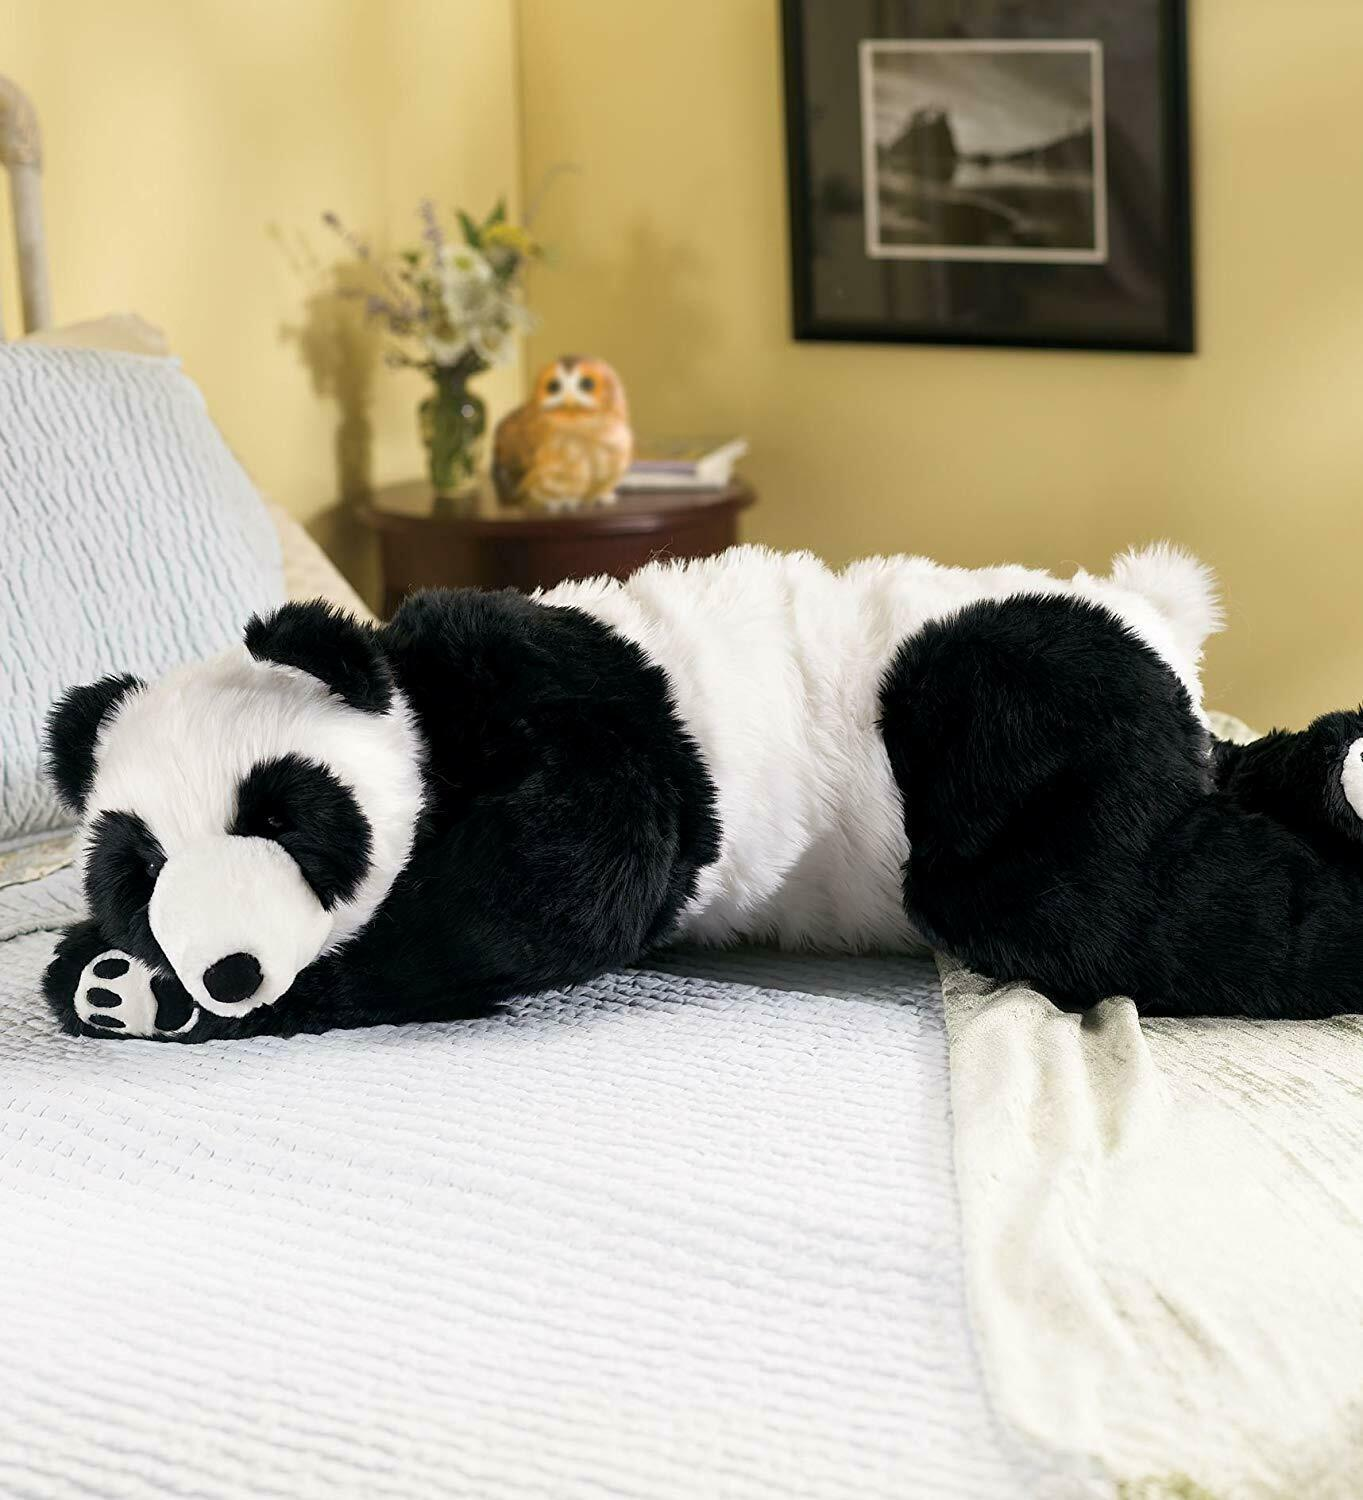 Realistic Large Panda Bear Stuffed Toy Body Pillow Weighted Animal Plush Teddy